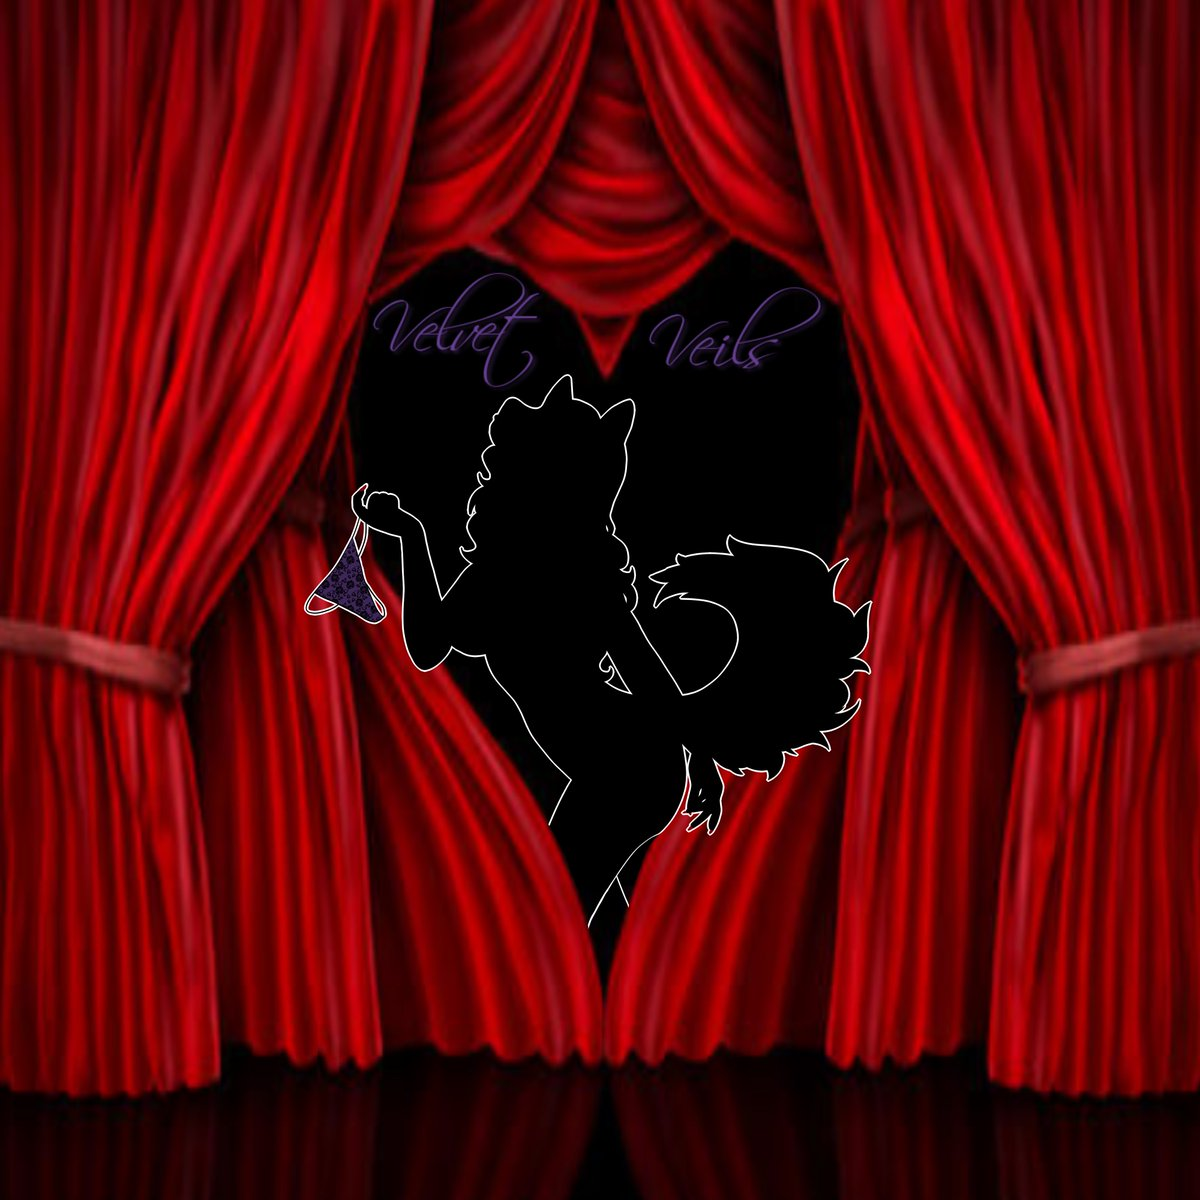 So it's still tentative, but I'm opening my own place on SL. Velvet Veils Speakeasy & Cabaret! We're hiring so go check us out and snag an application if you're interested!   #furry #secondlife #club #cabaret #burlesque